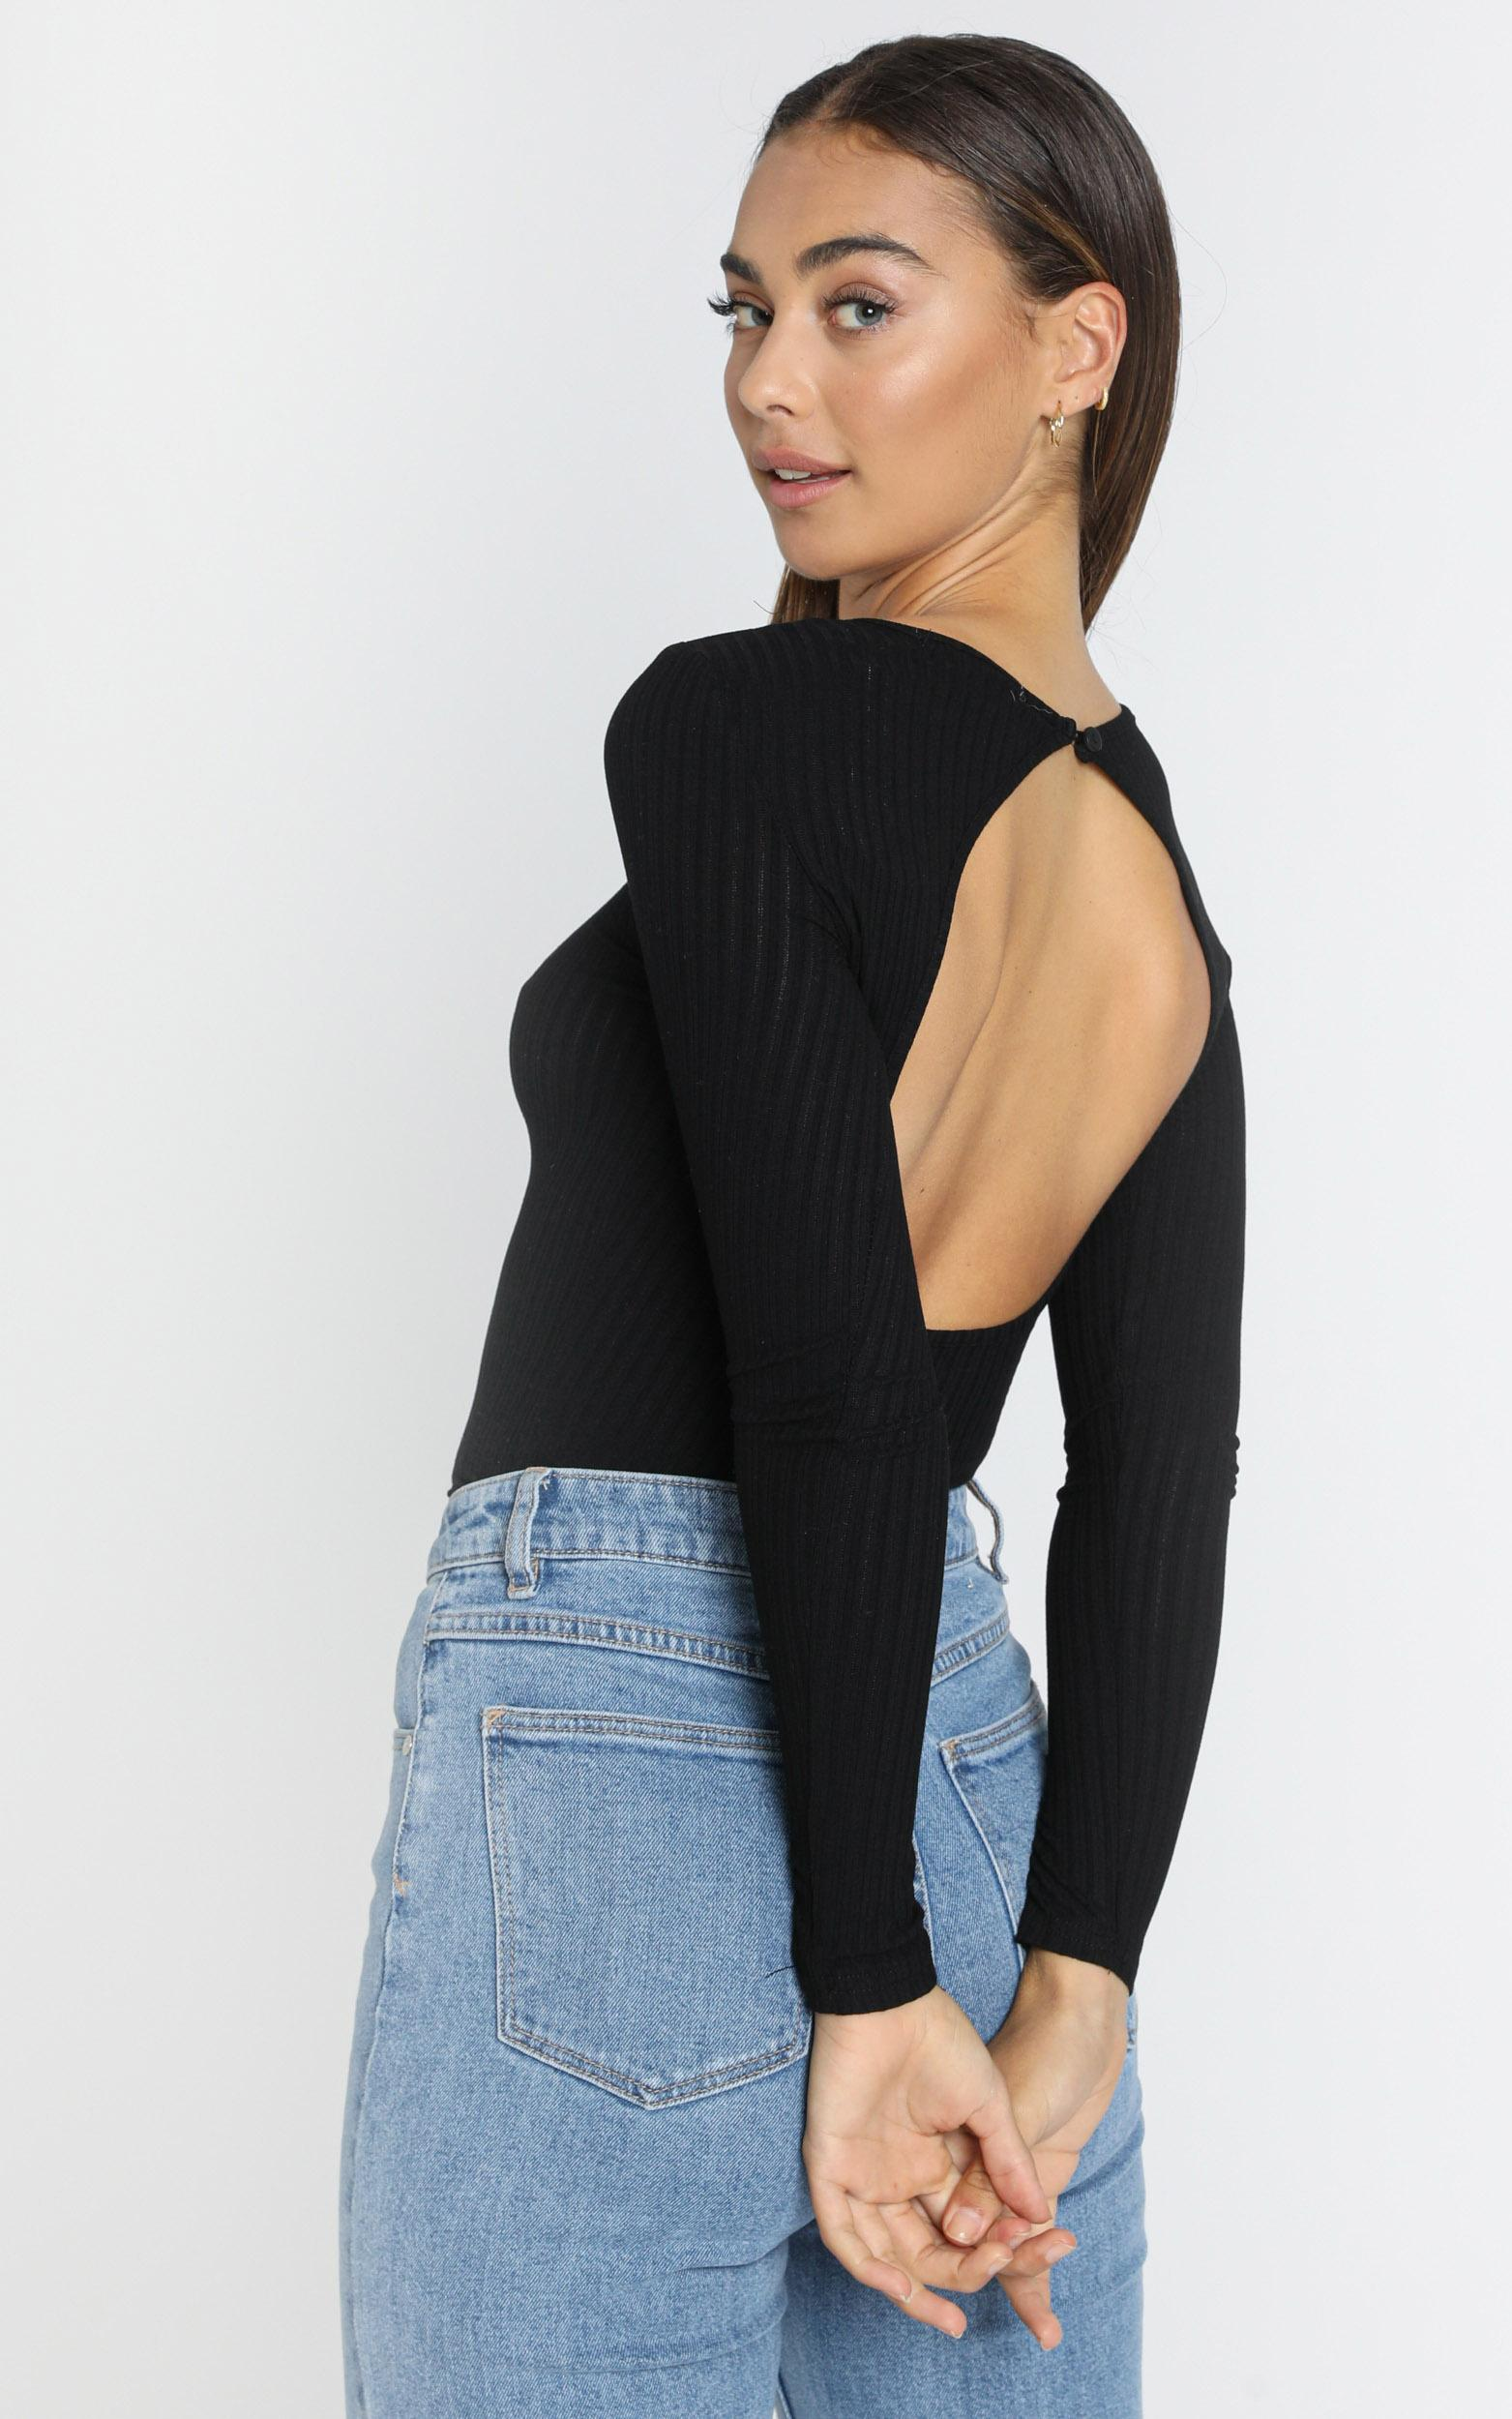 Slone Top in Black - 6 (XS), Black, hi-res image number null